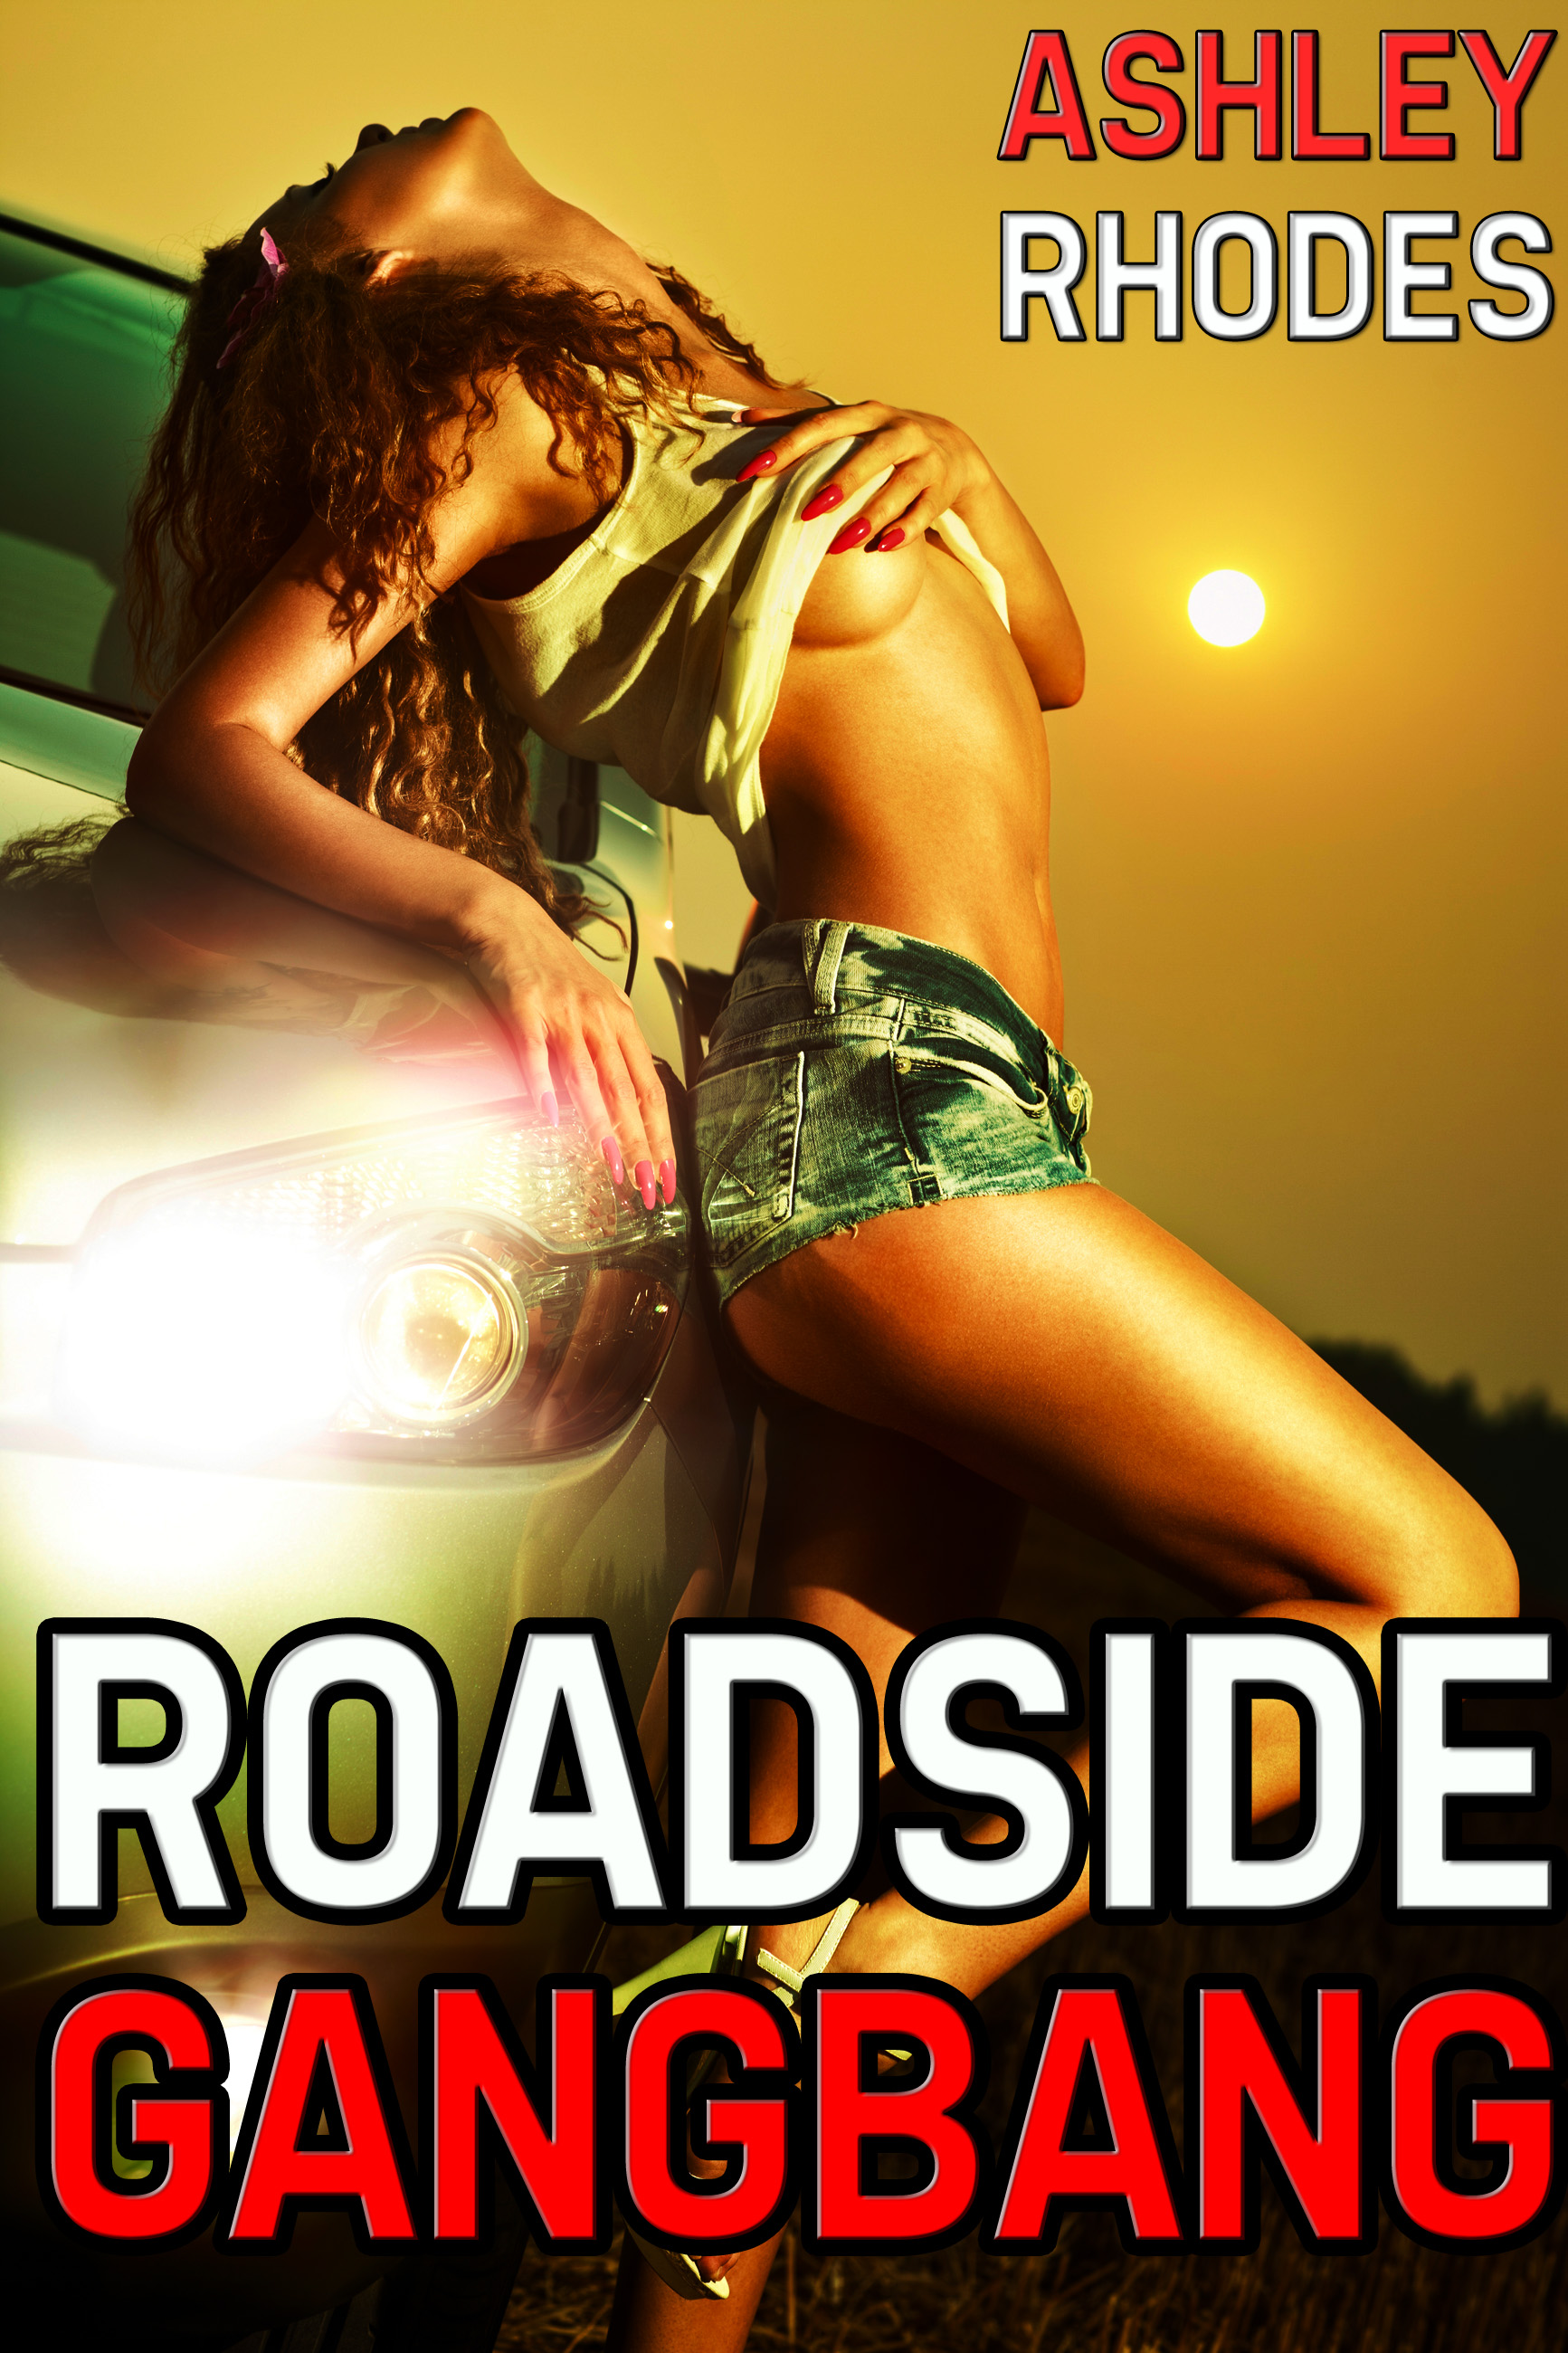 Ashley Rhodes - Roadside Gangbang (m/m/m/f Erotica)